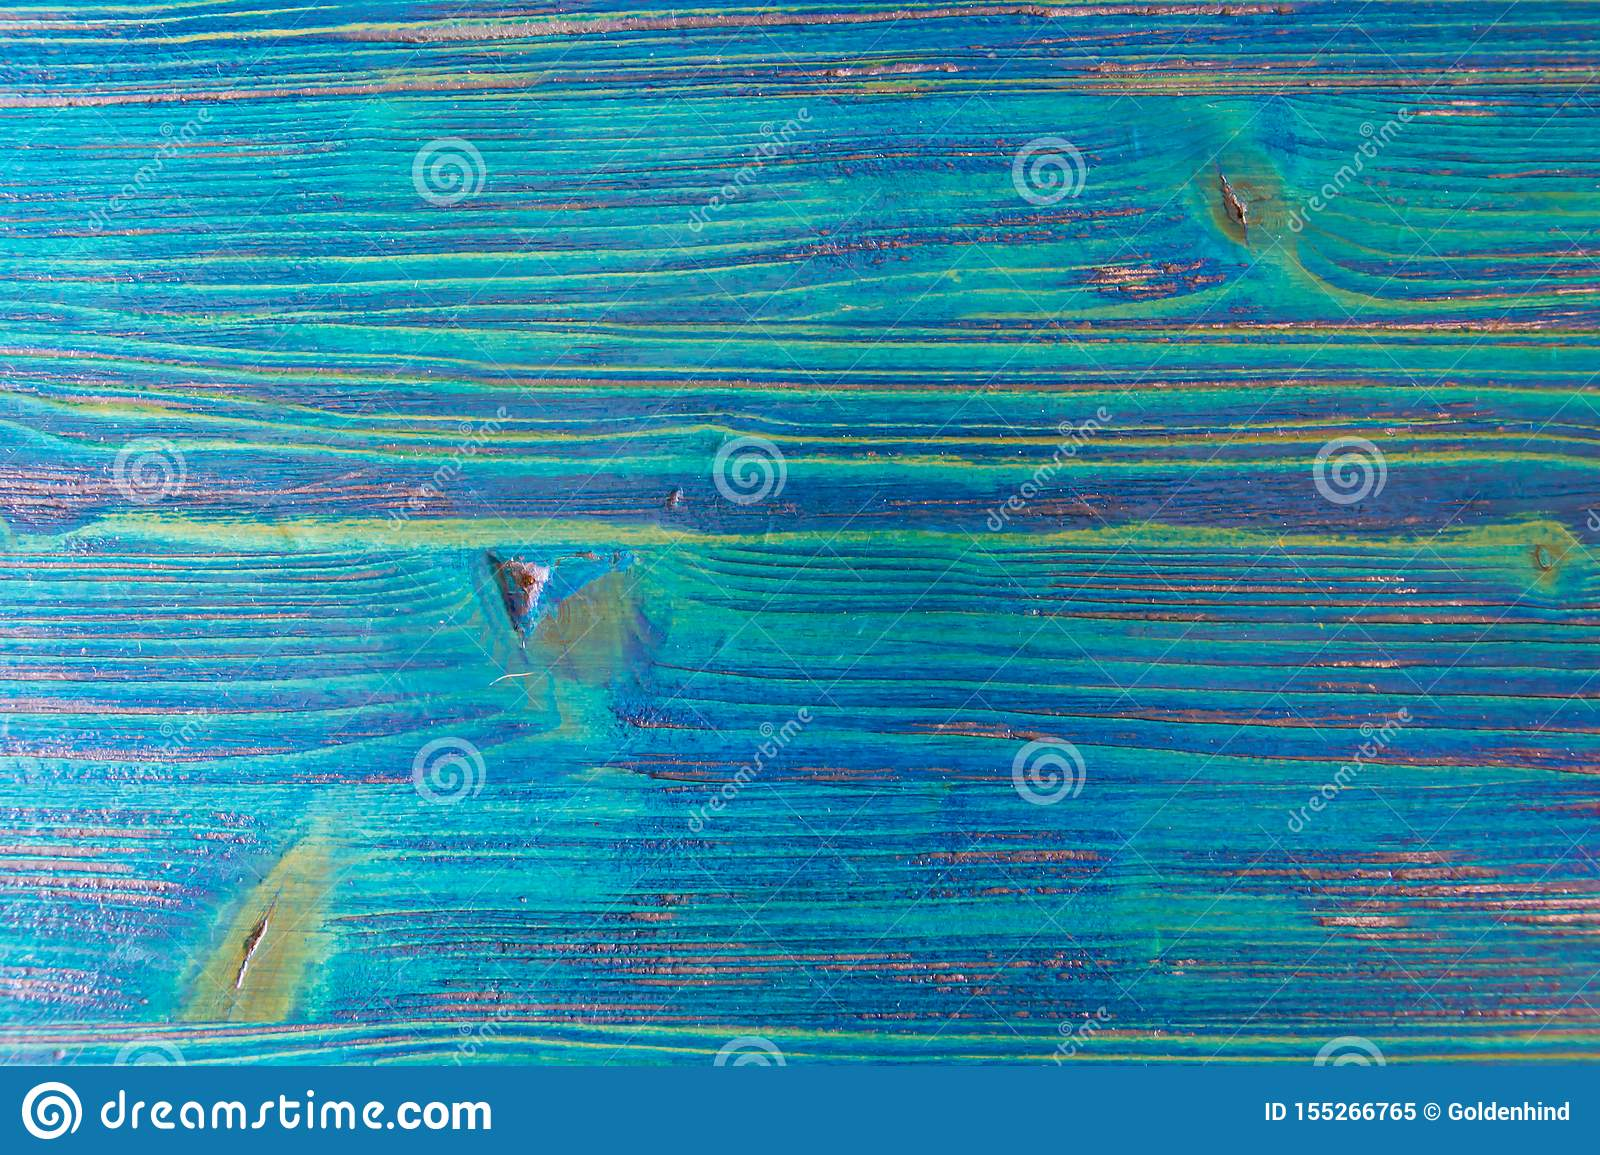 Vintage blue wood background texture with knots and natural patterns. Blue abstract background